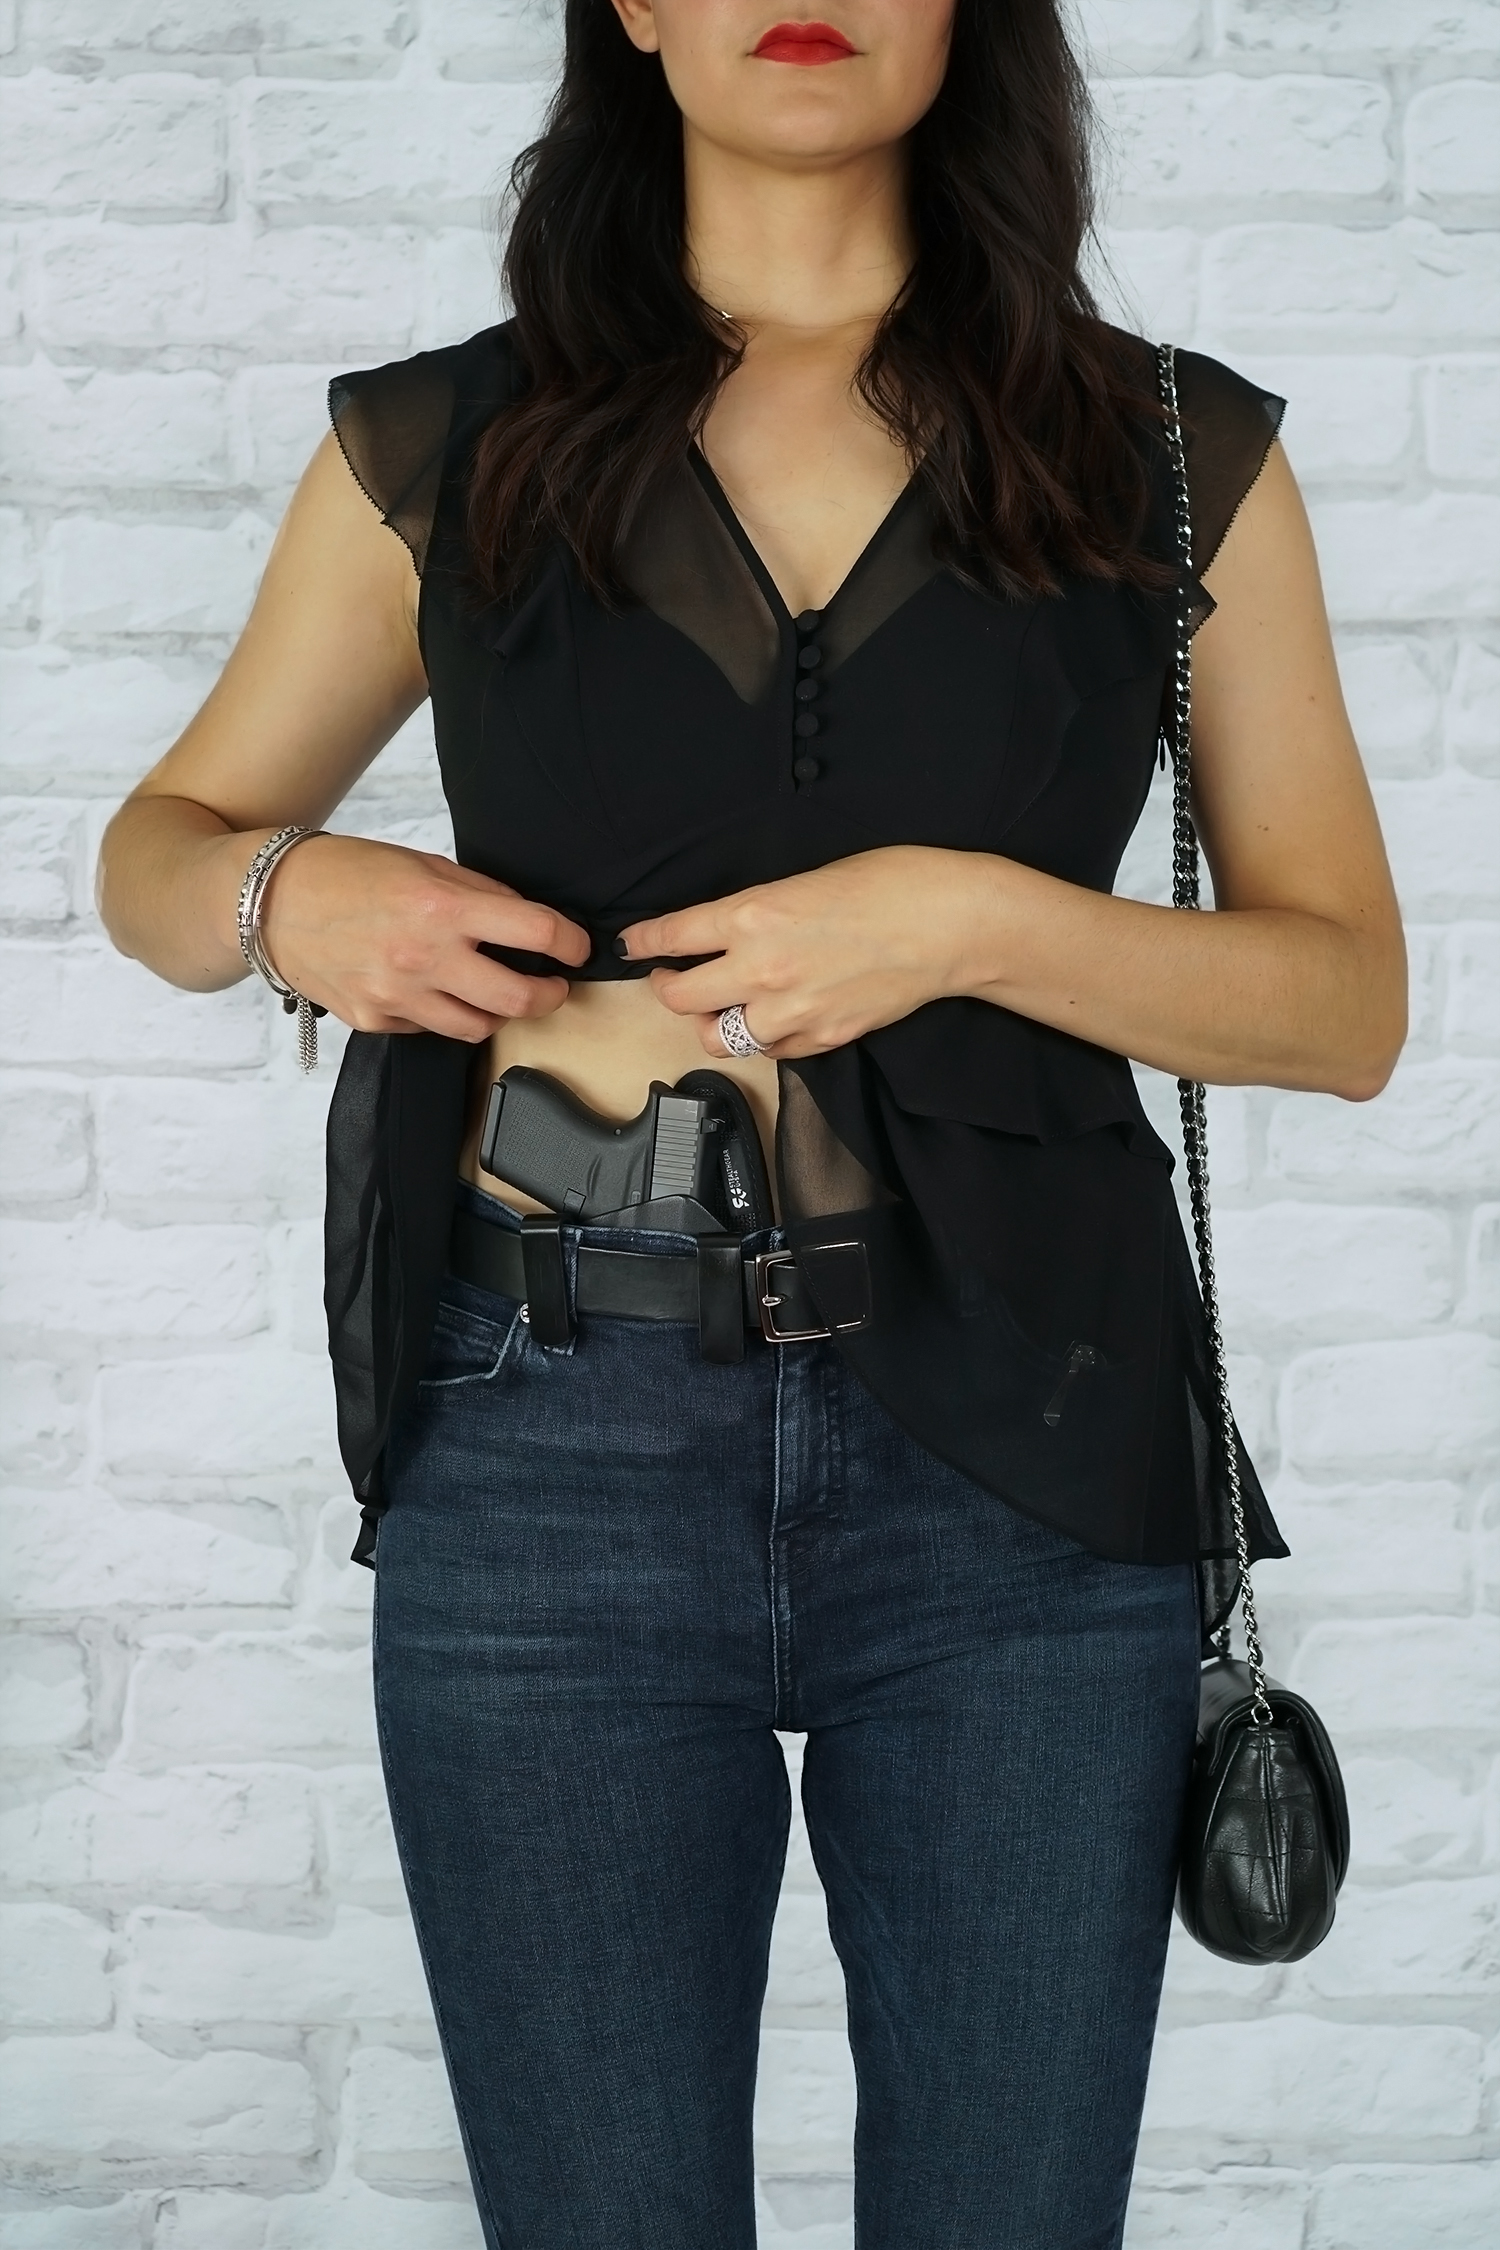 Glock 43 Concealed Carry Women